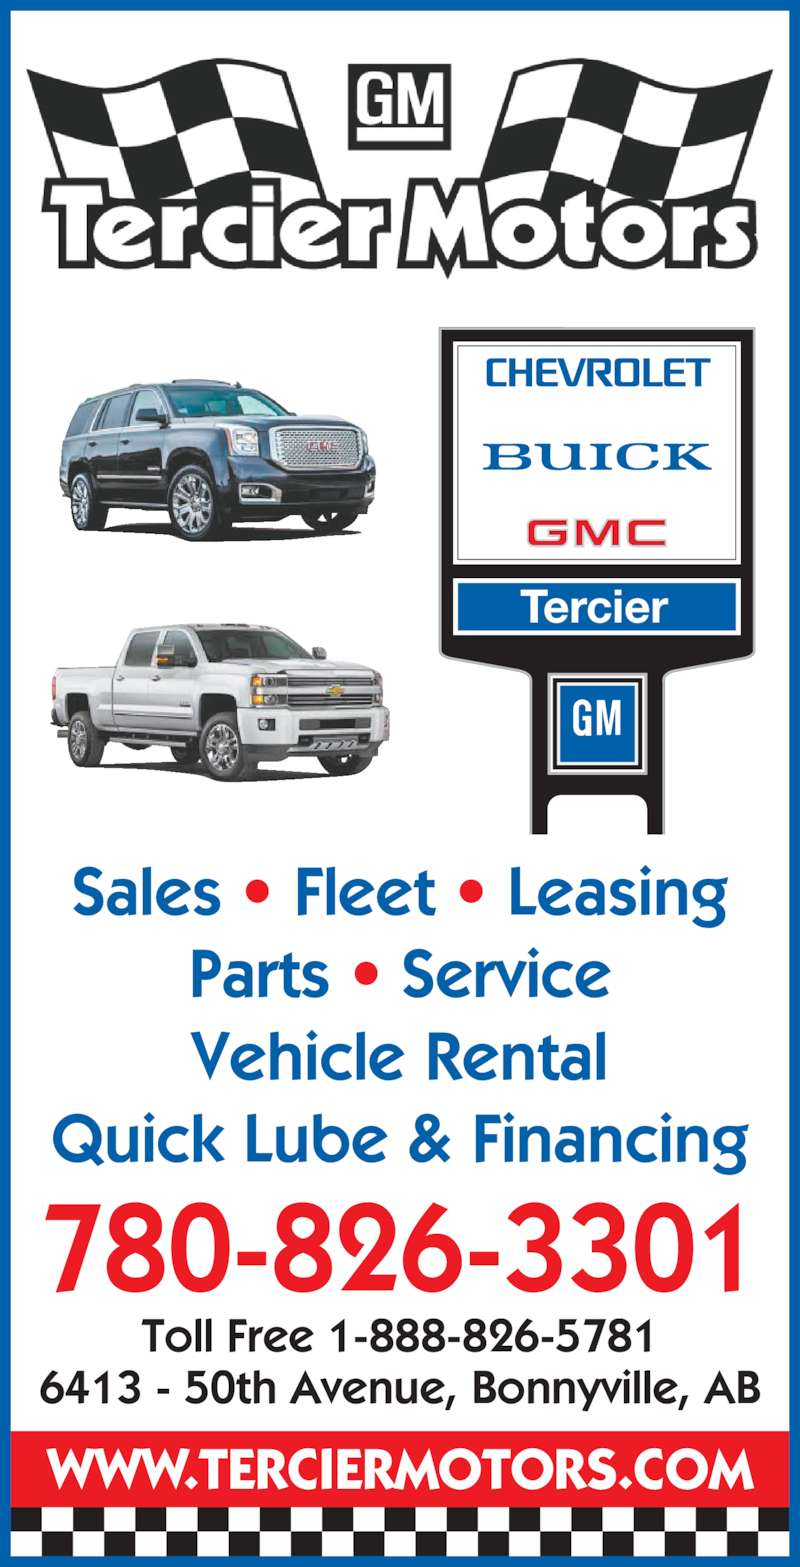 Tercier Motors Ltd (780-826-3301) - Display Ad - 780-826-3301 WWW.TERCIERMOTORS.COM Sales • Fleet • Leasing Parts • Service Vehicle Rental Quick Lube & Financing Toll Free 1-888-826-5781 6413 - 50th Avenue, Bonnyville, AB Tercier